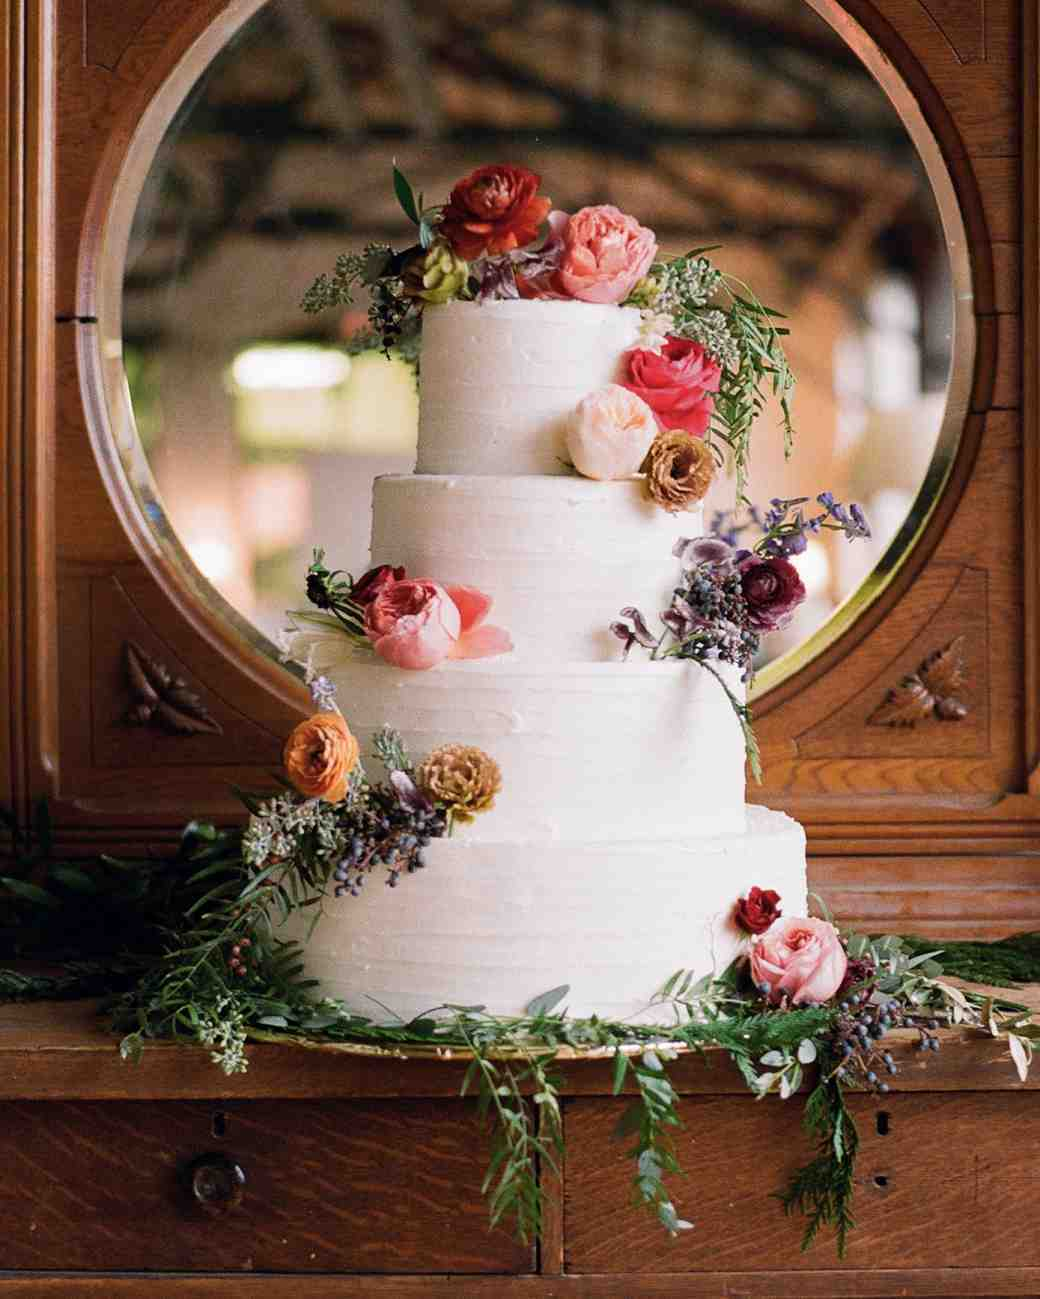 Winter wedding cakes - 6